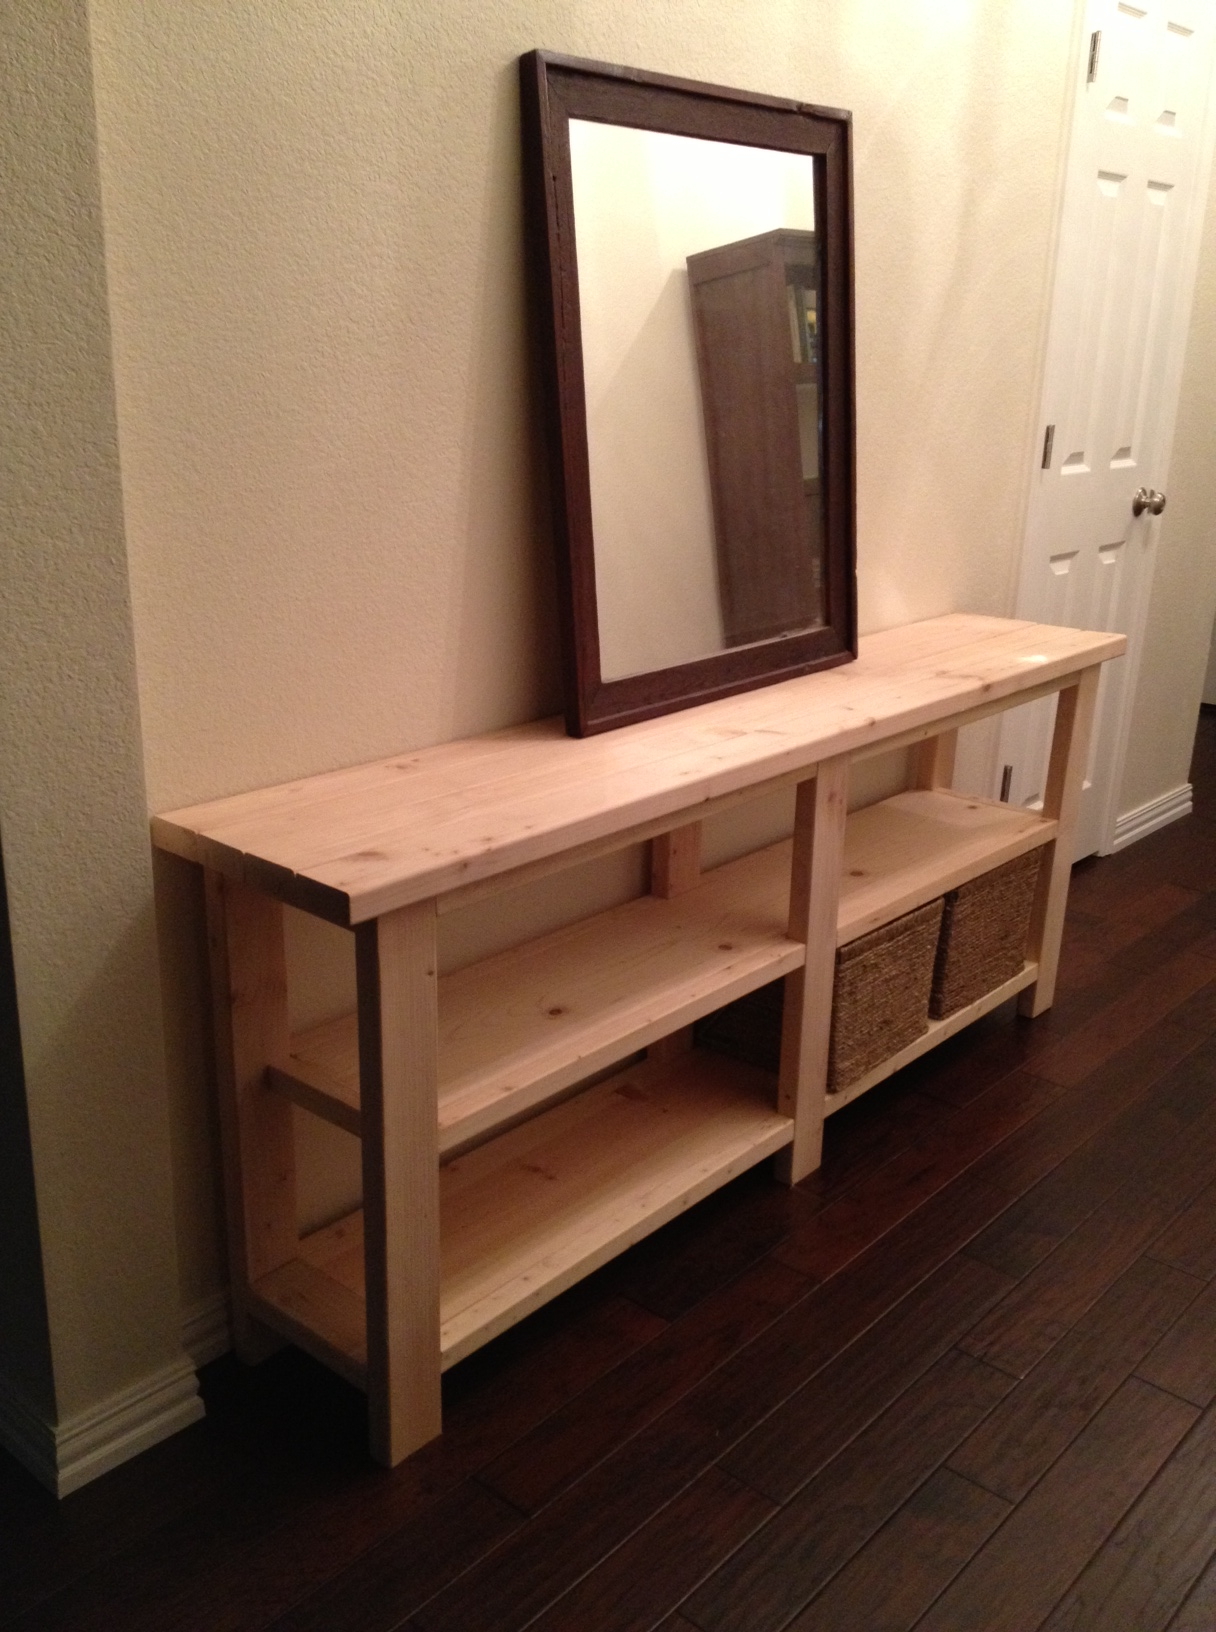 ana white sofa table bensen sleeper reviews rustic chic console thelotteryhouse